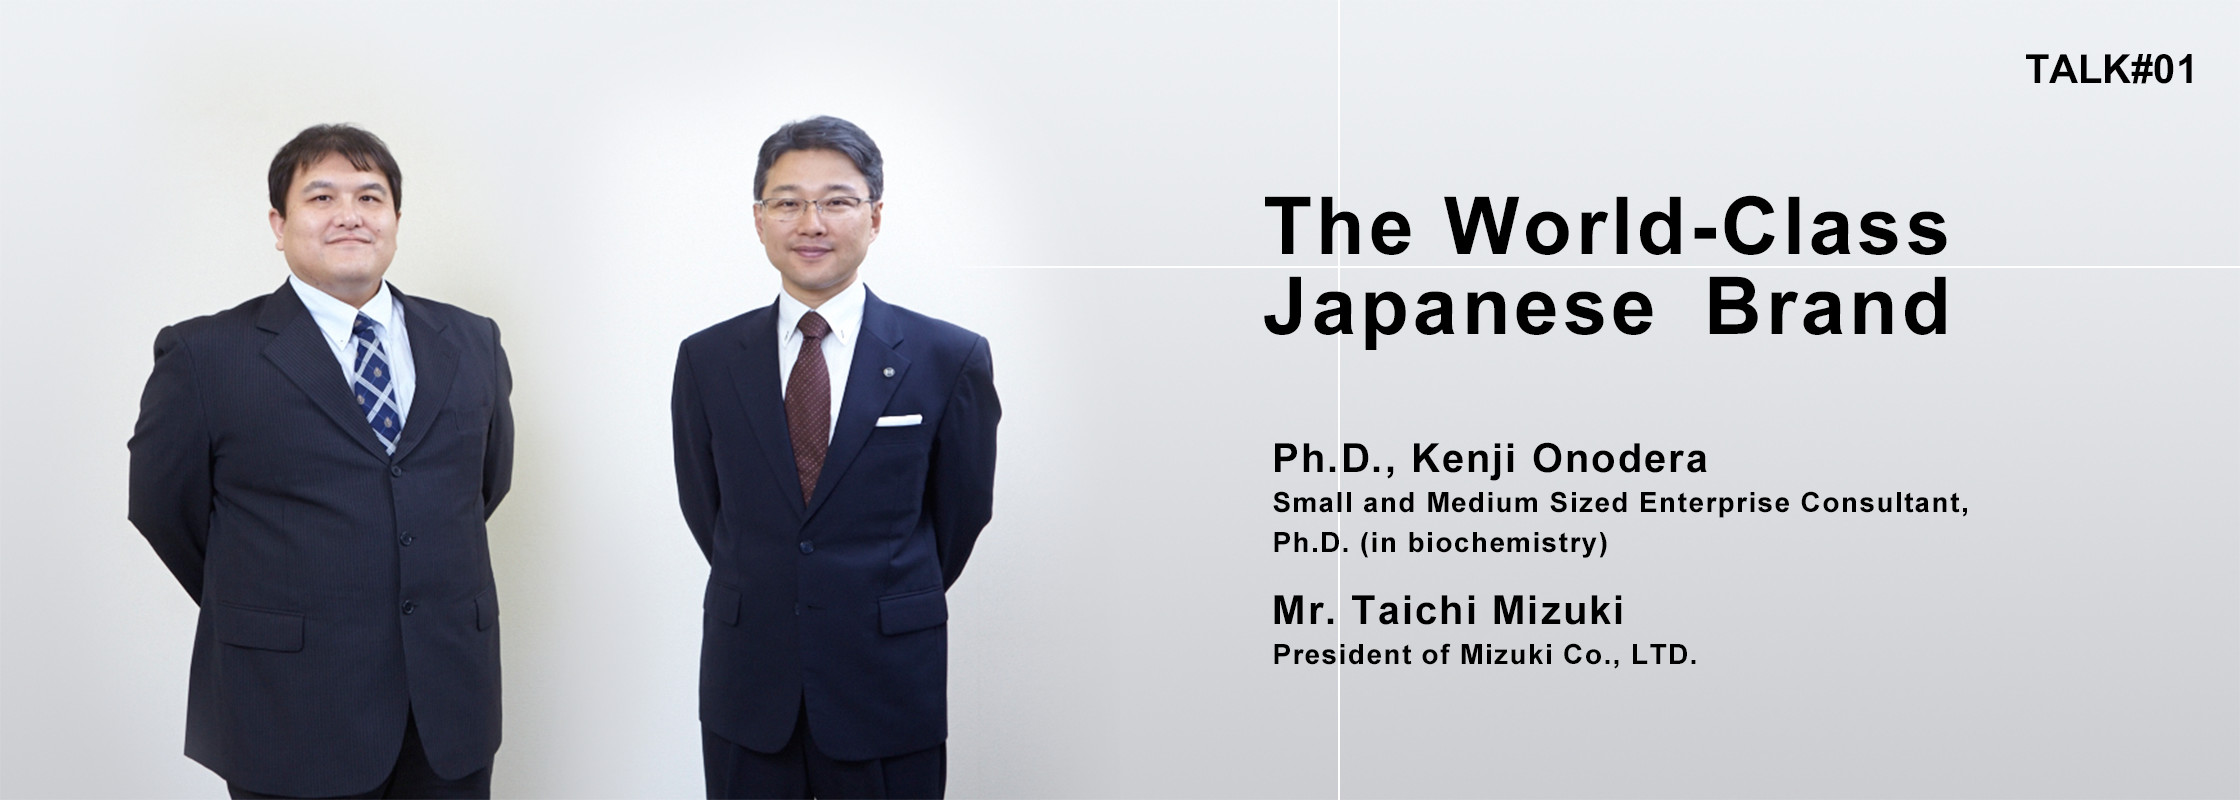 TALK#1 The World-Class Japanese Brand Ph.D., Kenji Onodera Small and Medium Sized Enterprise Consultant, Ph.D. (in biochemistry) Mr. Taichi Mizuki President of Mizuki Co., LTD.